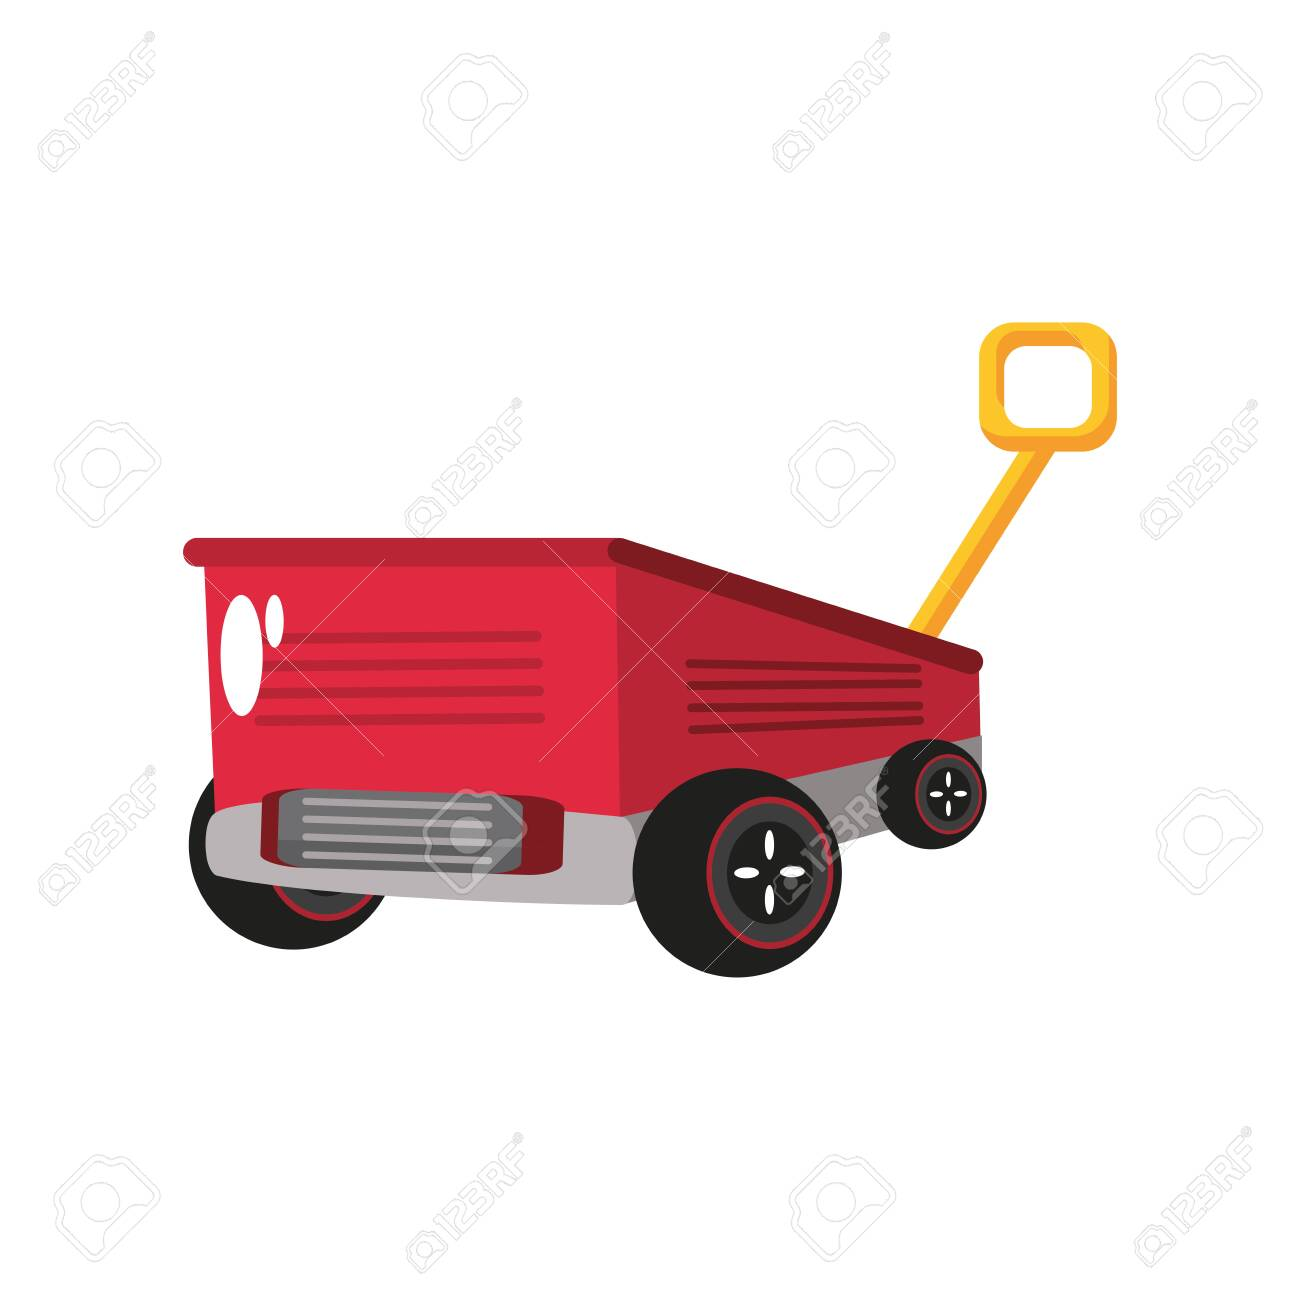 Little Red Wagon Kids Toy On White Background Vector Illustration Royalty Free Cliparts Vectors And Stock Illustration Image 153827811